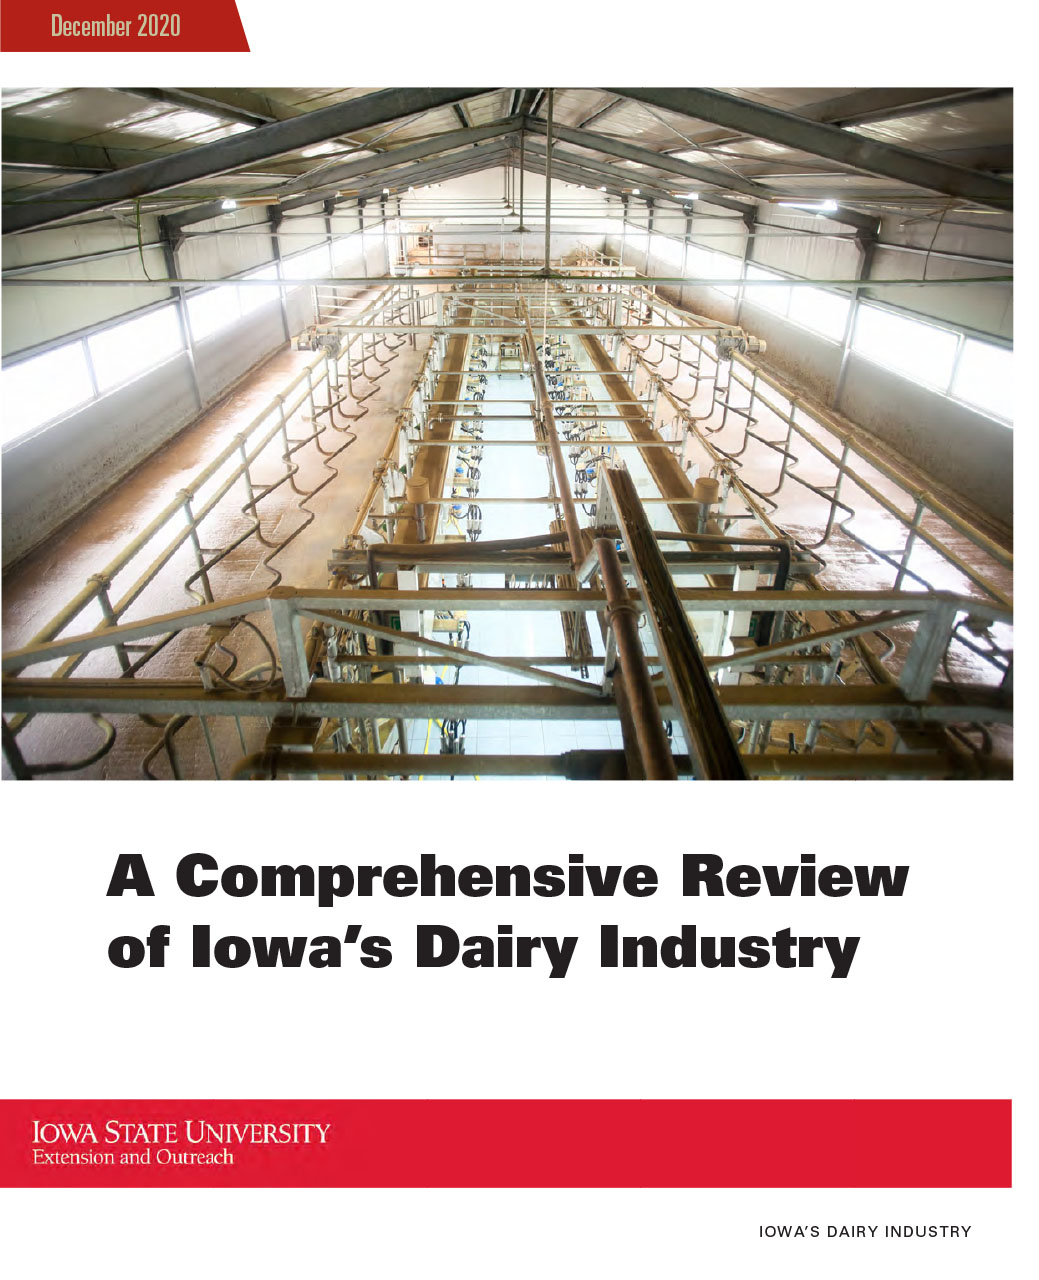 A Comprehensive Review of Iowas Dairy Industry